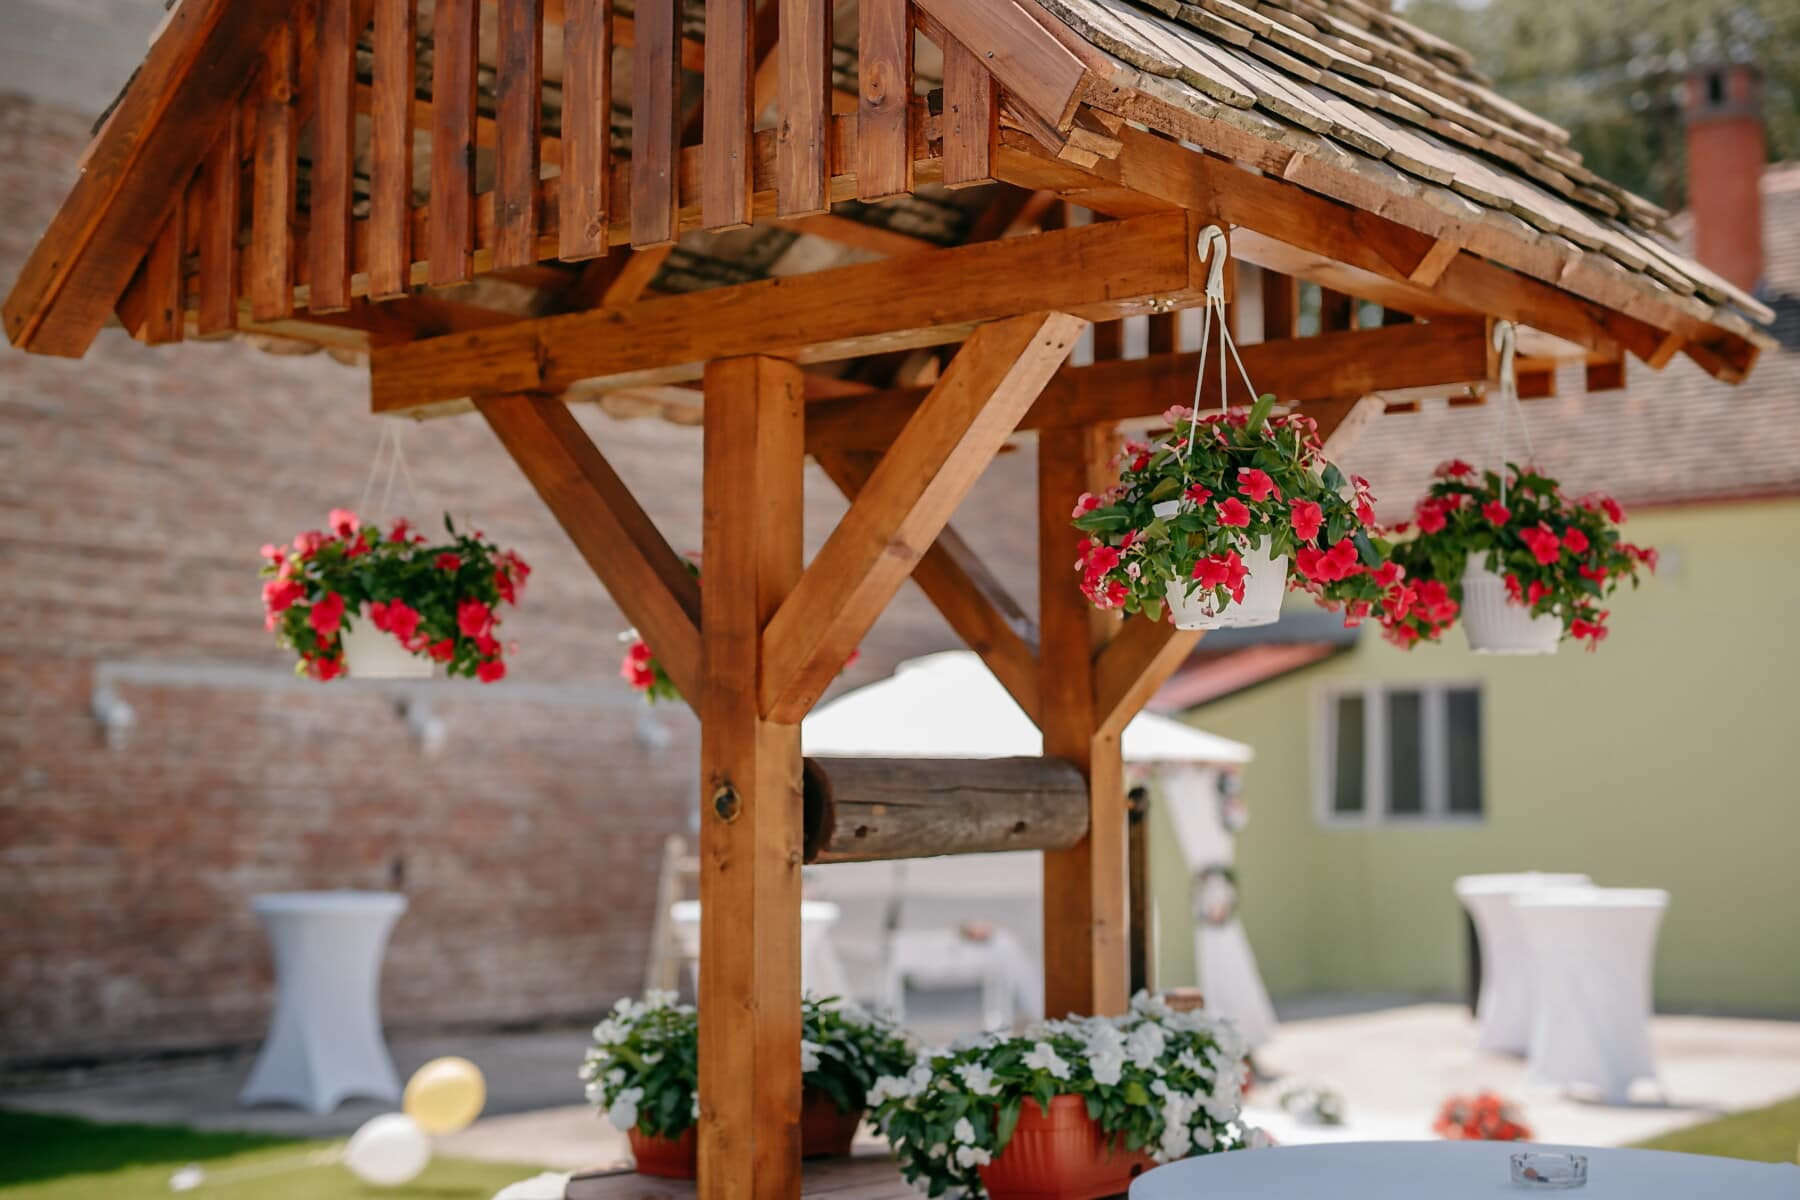 decoration, backyard, flowerpot, hanging, structure, wood, patio, area, house, architecture